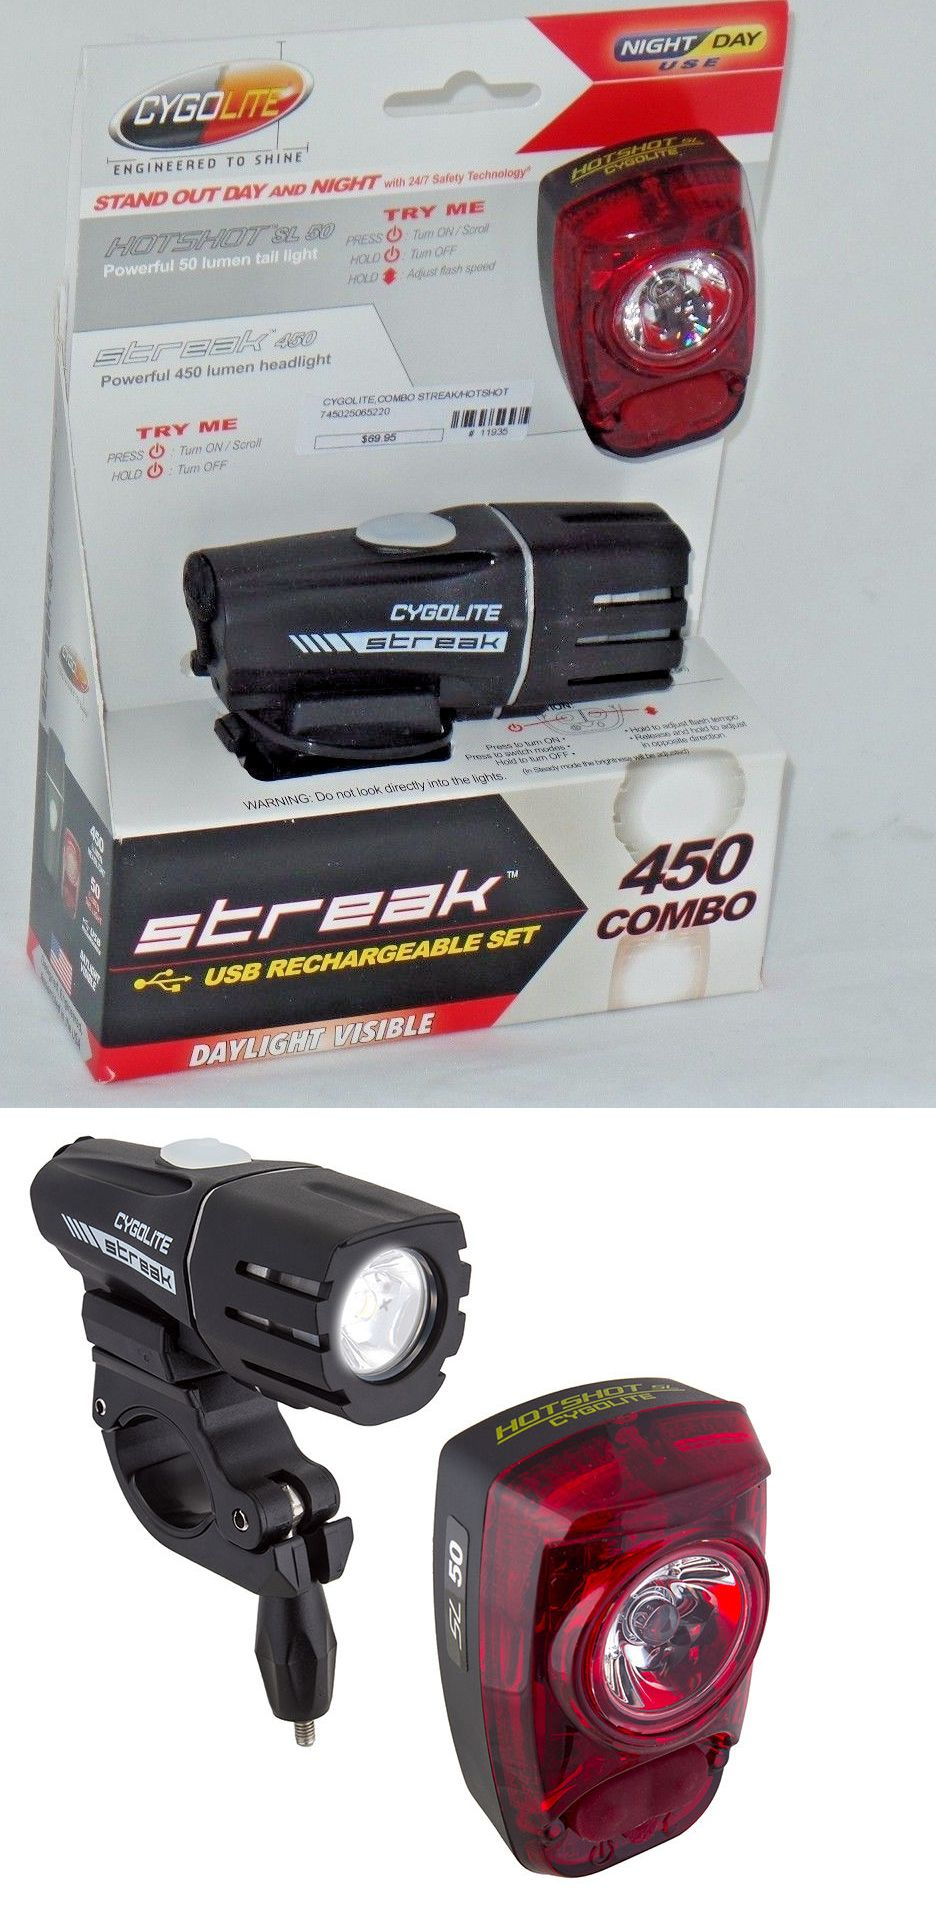 Lights and Reflectors 22689: Cygolite Streak 450 Headlight And Hotshot Sl 50 Tail Light Combo, Day Night Use -> BUY IT NOW ONLY: $53.9 on eBay!